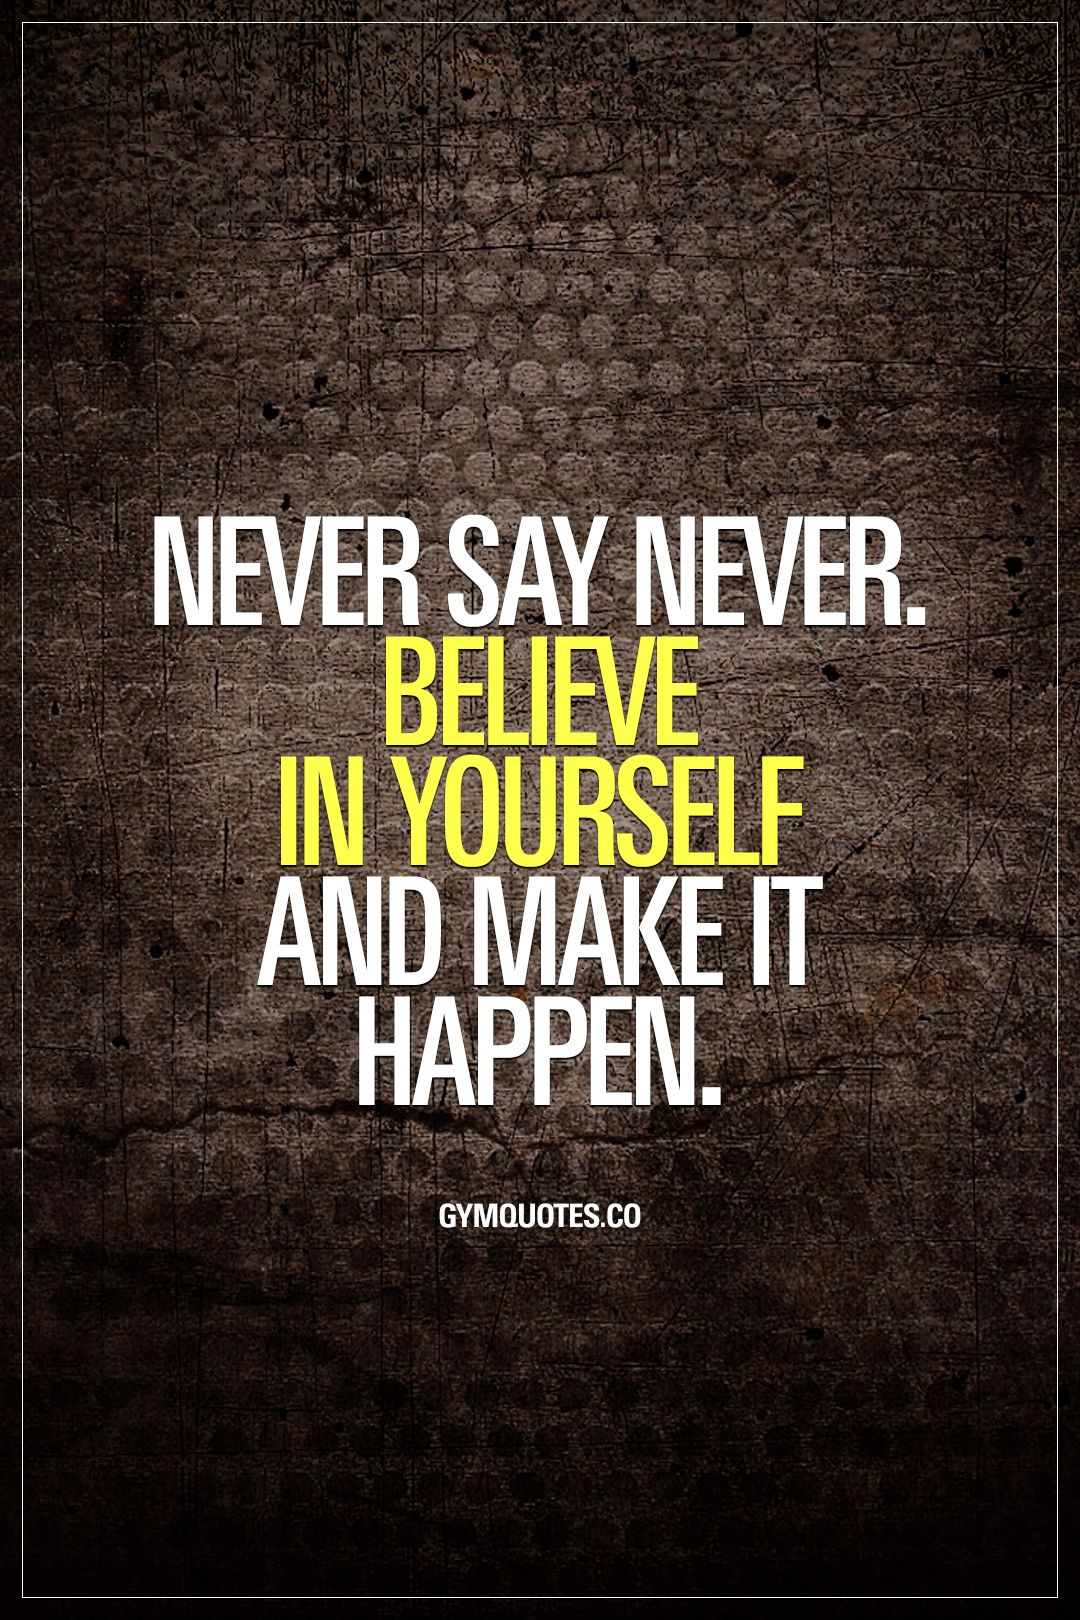 Never Say Never Quotes : never, quotes, Never, Never., Believe, Yourself, Happen., Never,, Nev…, Quotes,, Fitness, Motivation, Funny